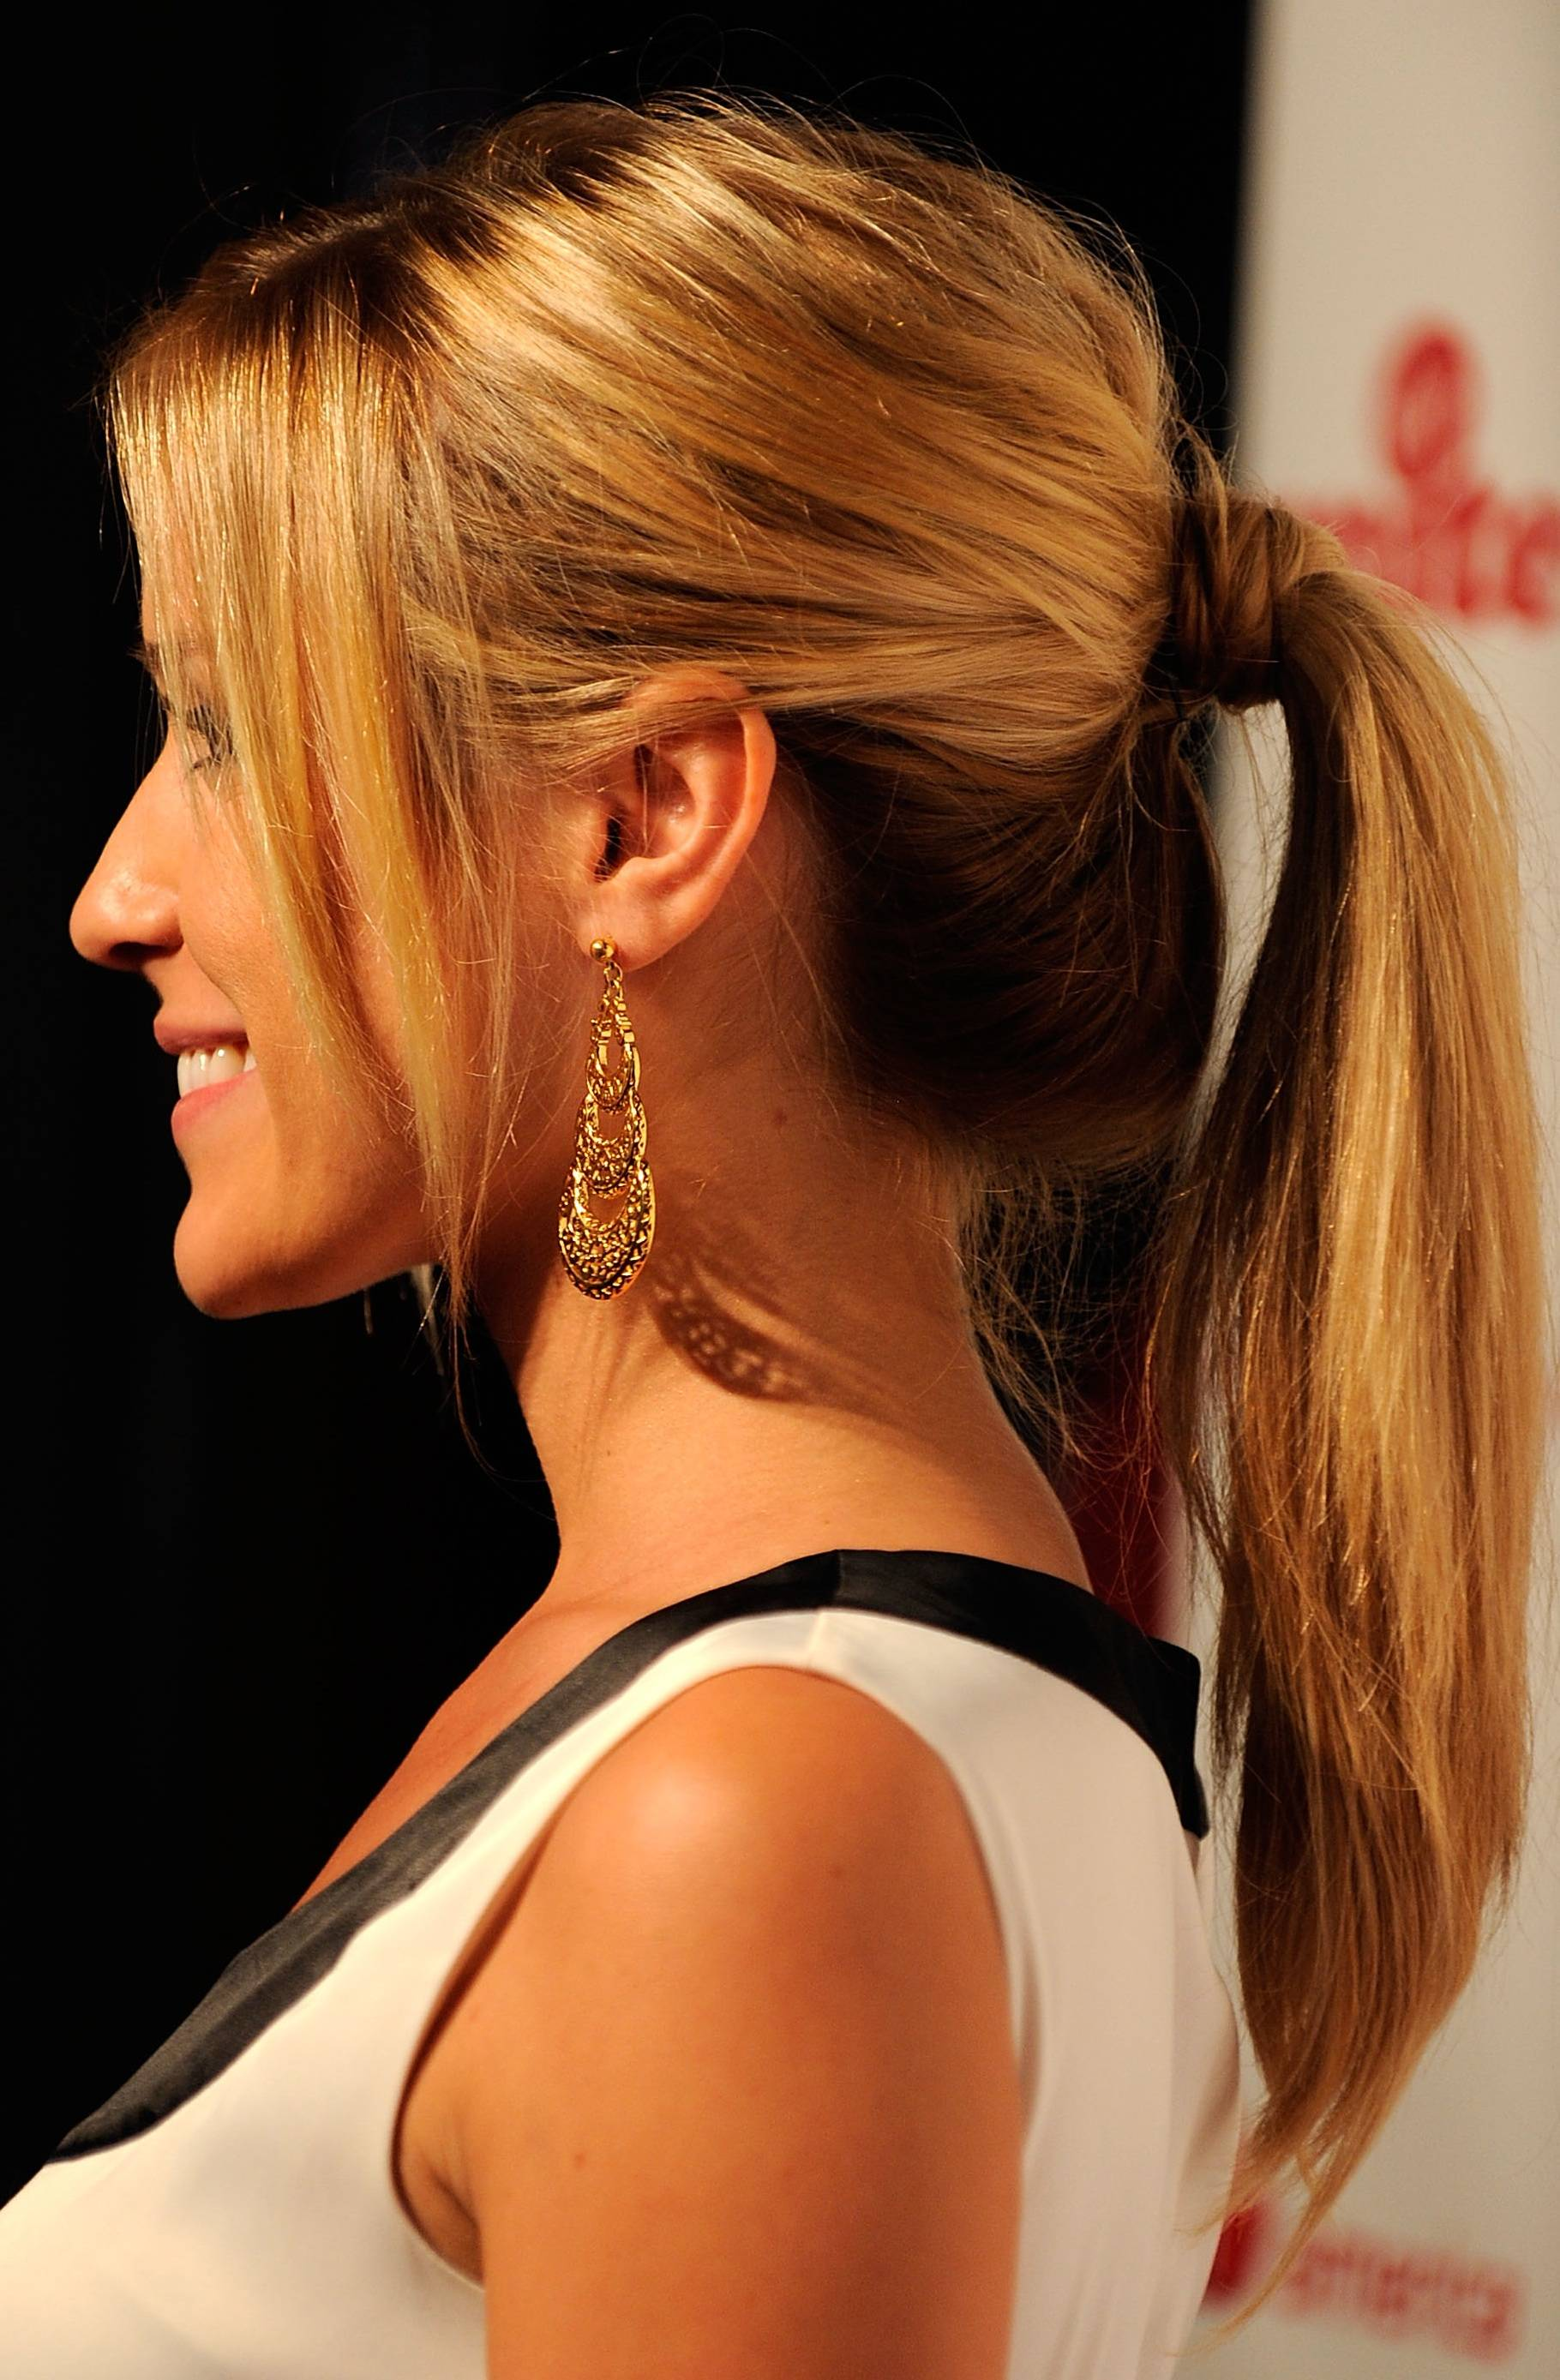 Hairstyle Trend for Fall/Winter 20112012: Simple yet Sexy